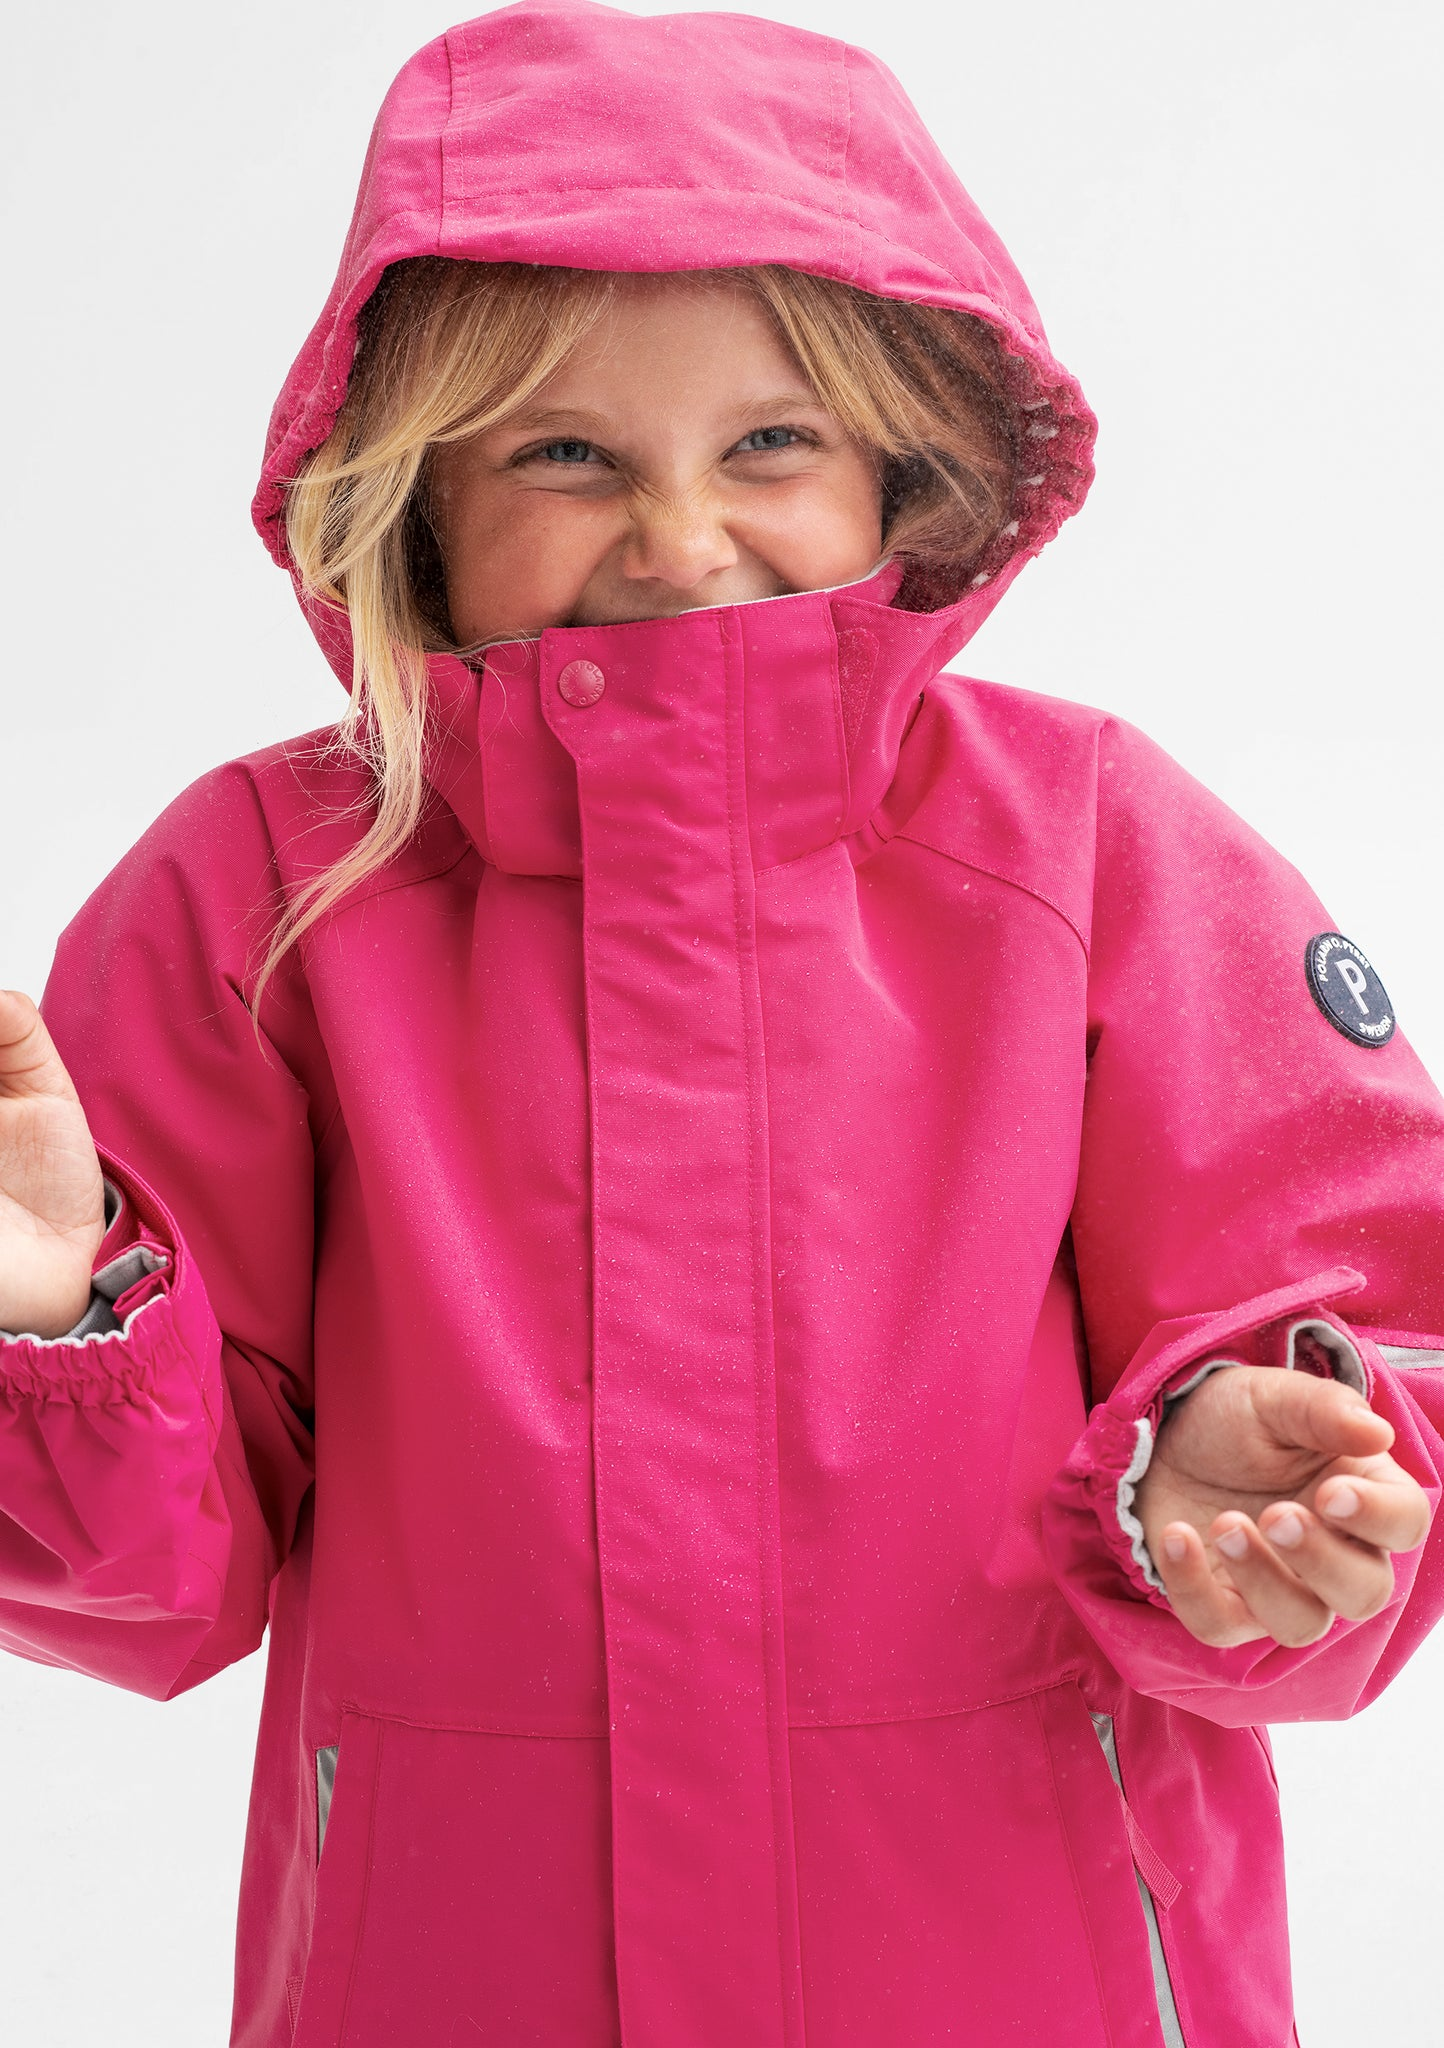 A young girl wearing a pink, kids waterproof jacket with detachable hood and adjustable cuffs, made of soft shell fabric.